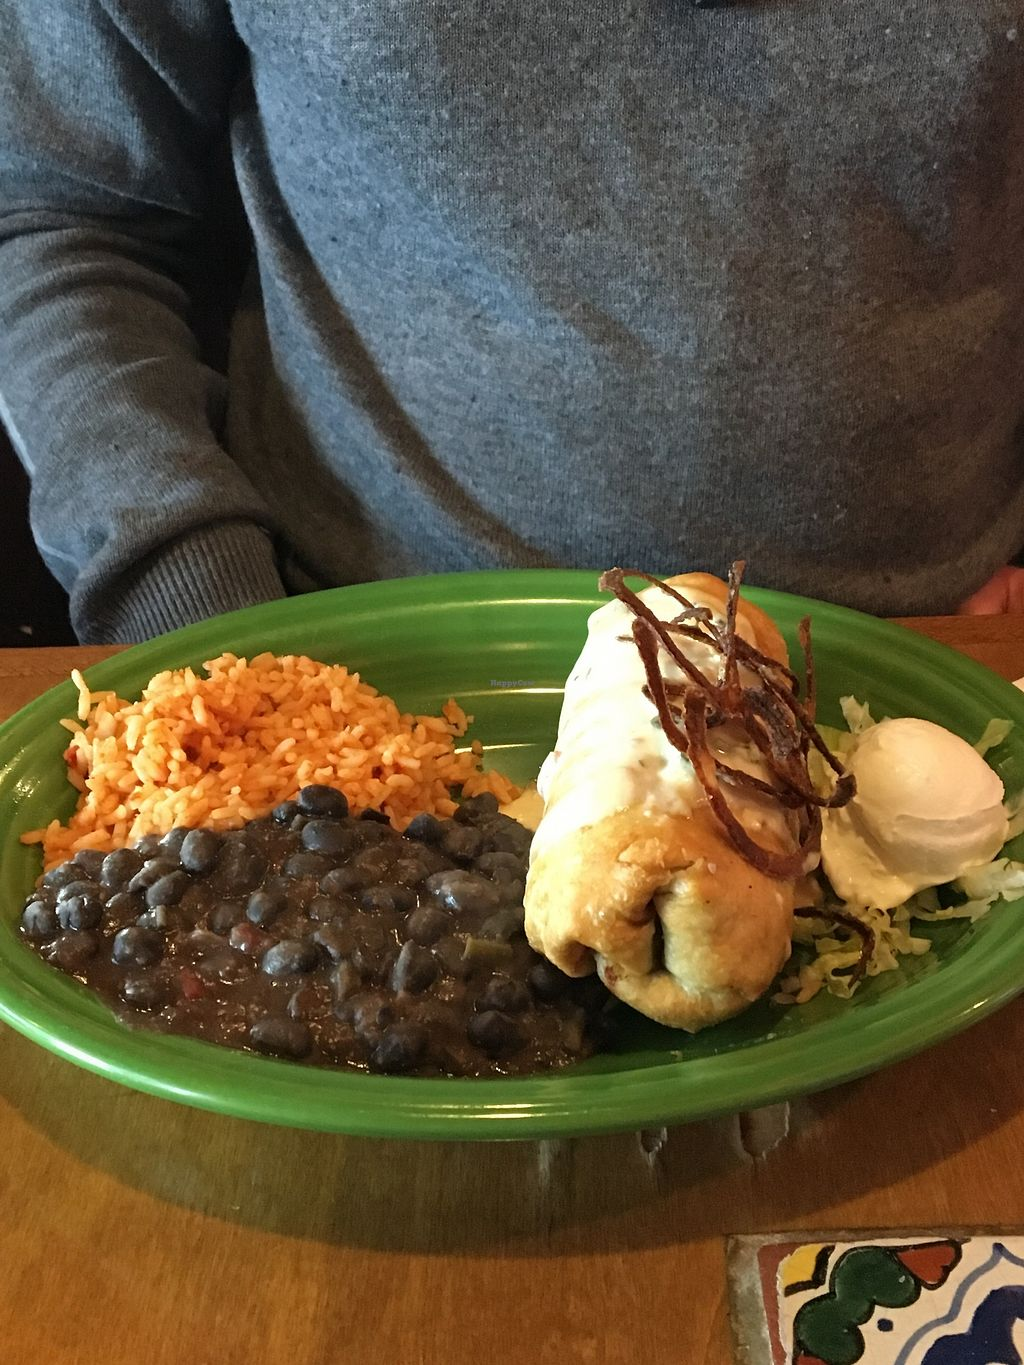 """Photo of Miguel's Mexican Restaurant  by <a href=""""/members/profile/sophiefrenchfry"""">sophiefrenchfry</a> <br/>Vegetarian Chimichanga <br/> June 20, 2017  - <a href='/contact/abuse/image/30051/271506'>Report</a>"""